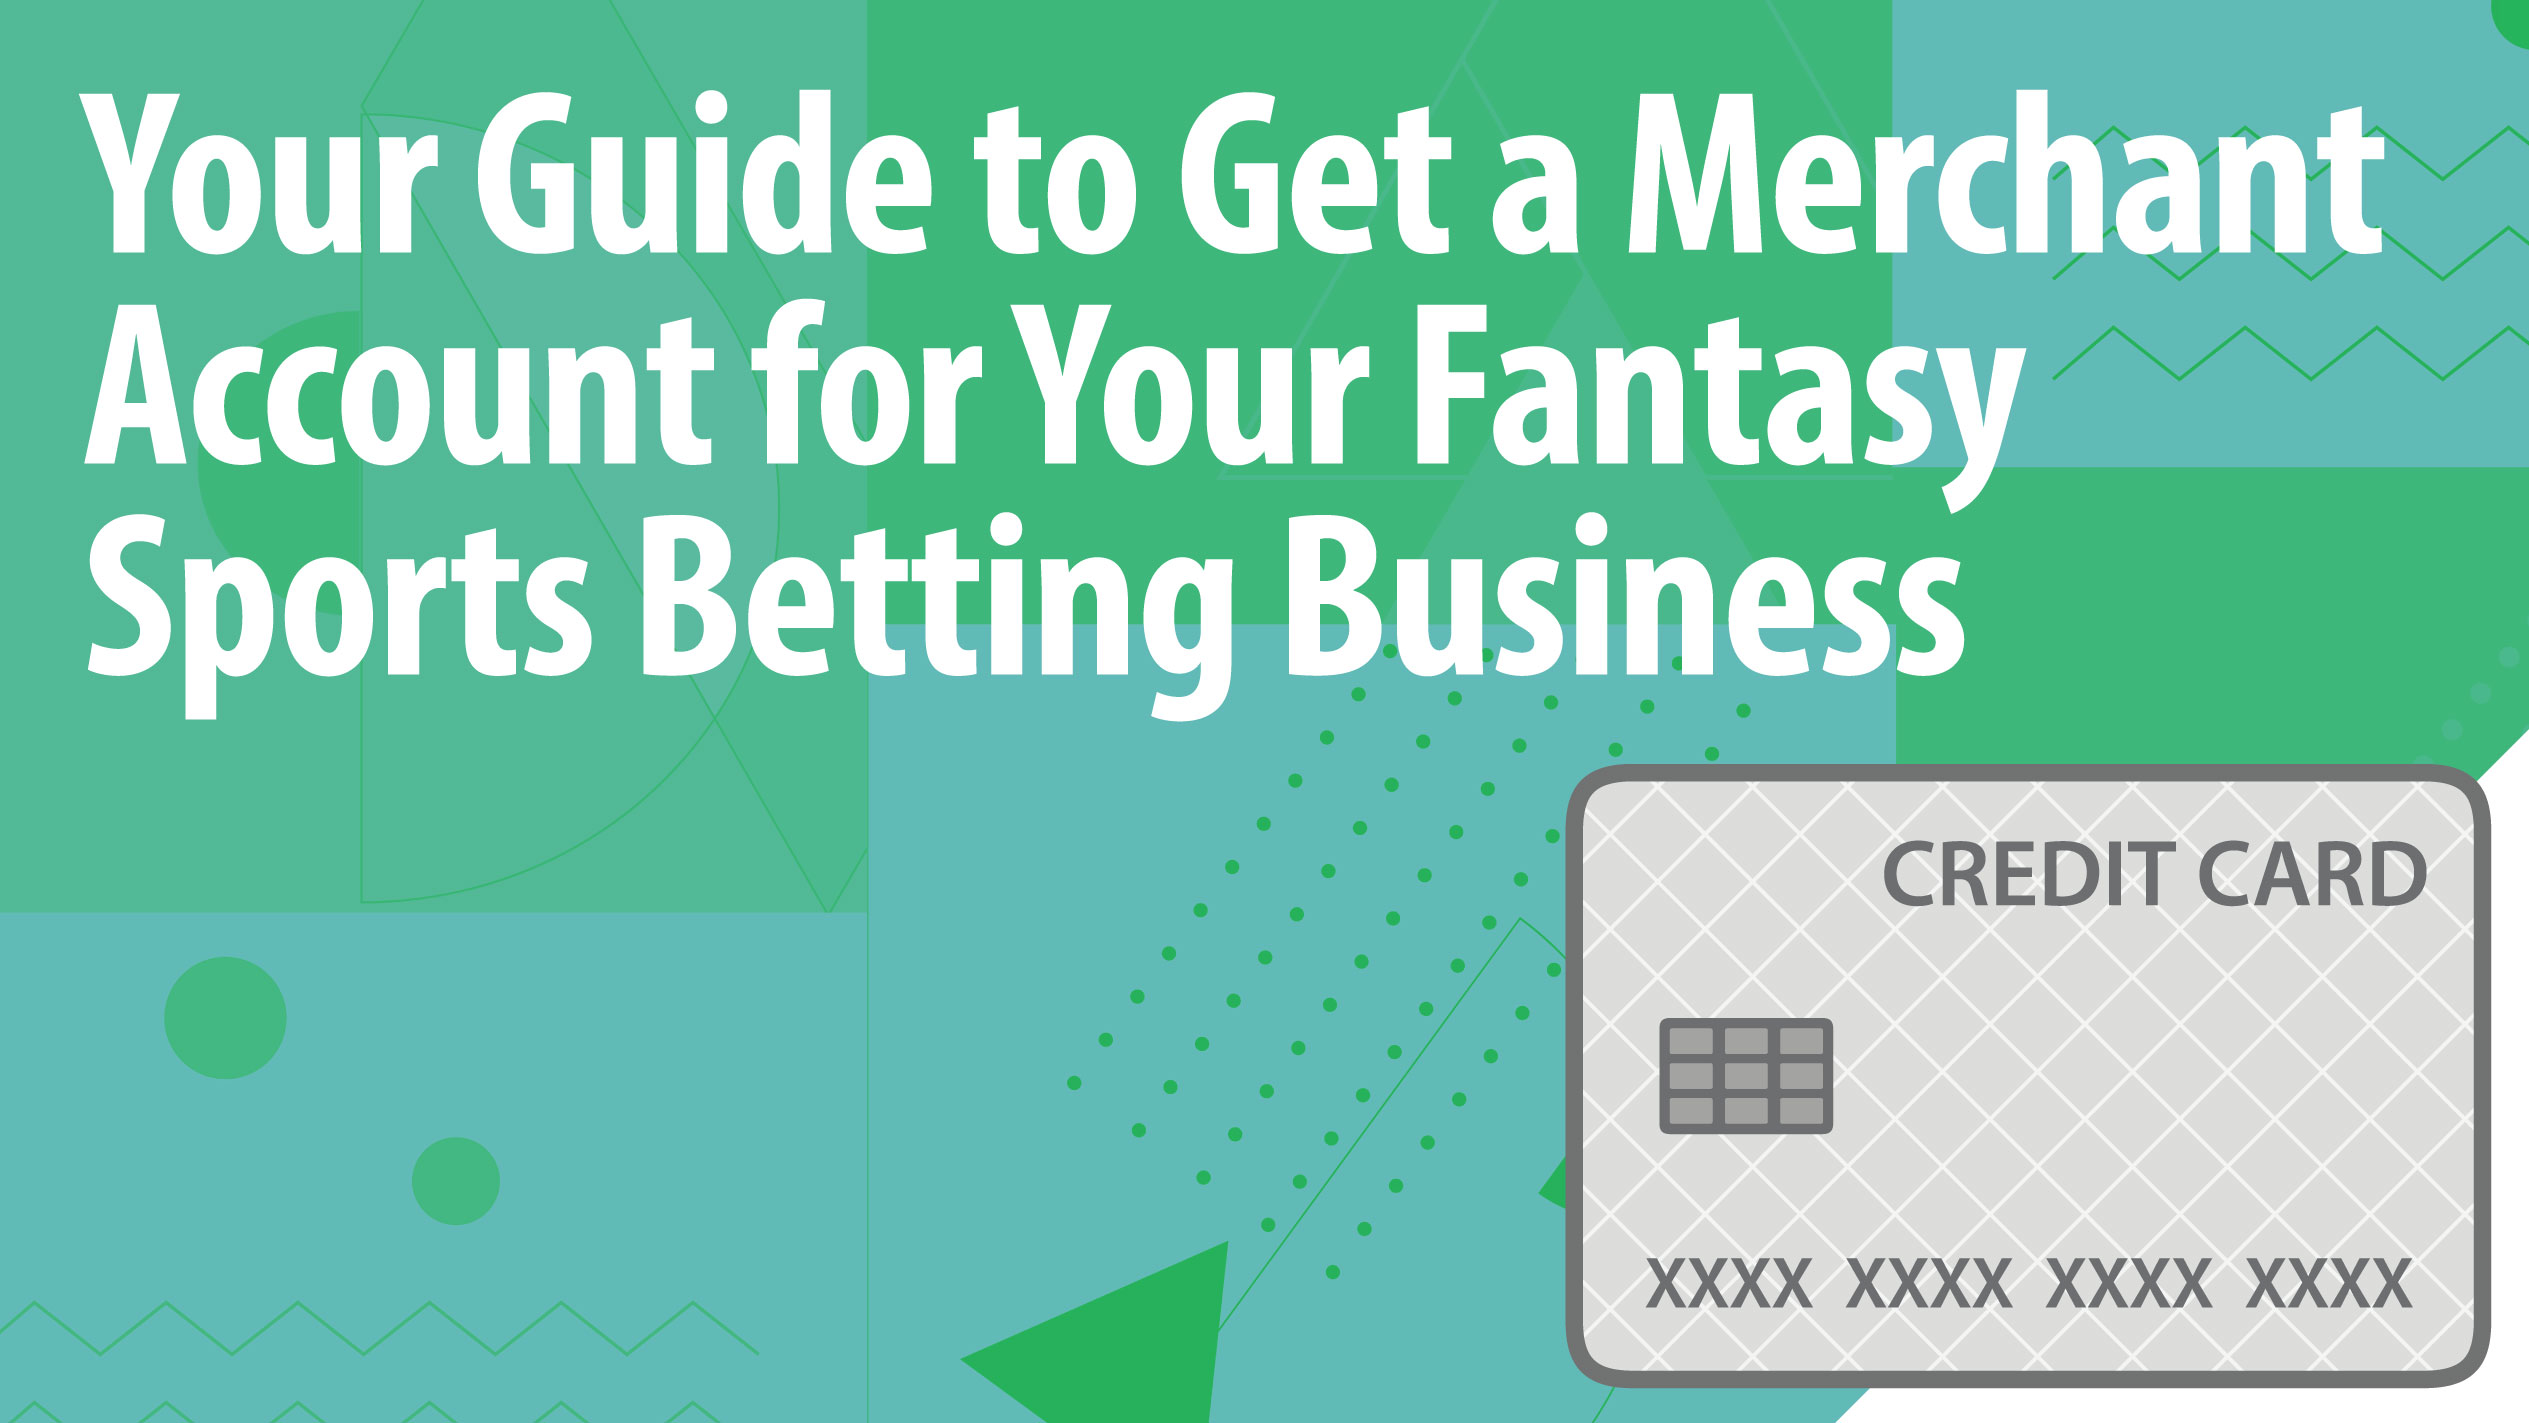 Your Guide to Get a Merchant Account for Your Fantasy Sports Betting Business